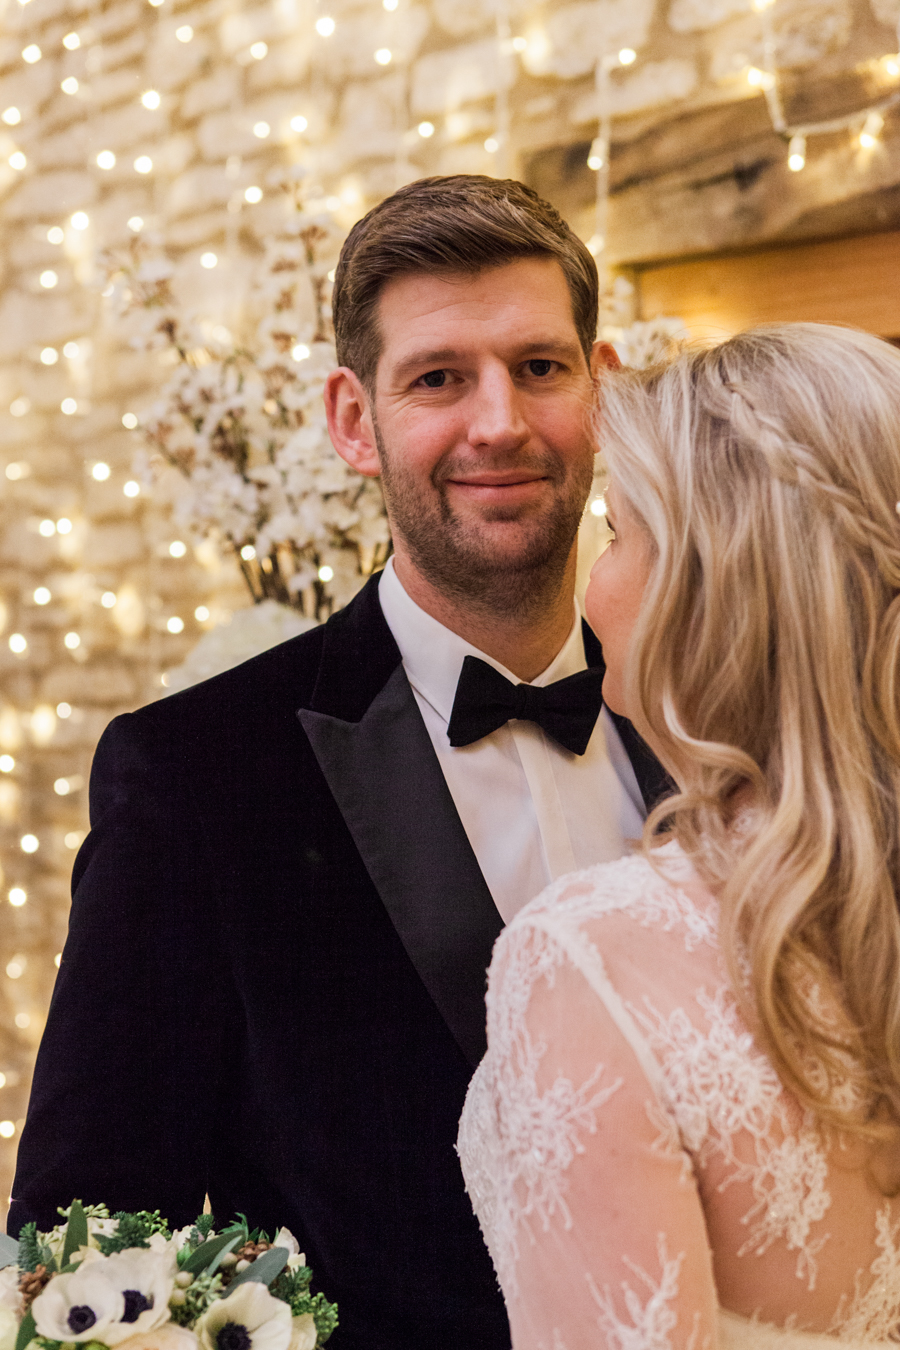 A super elegant black tie wedding in winter, photographed by Amanda Karen Photography (24)